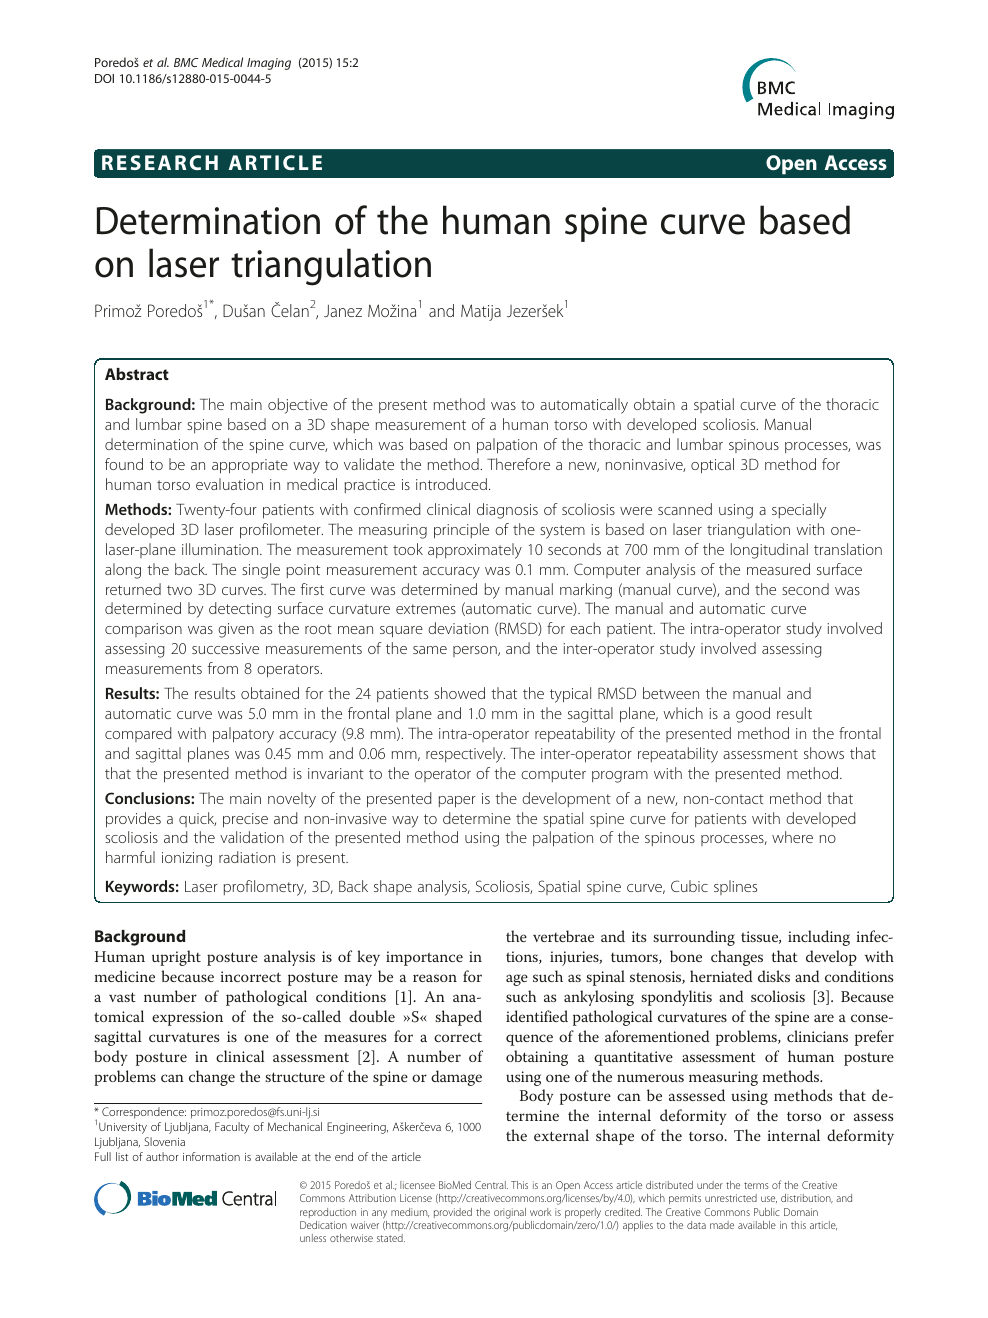 Determination of the human spine curve based on laser